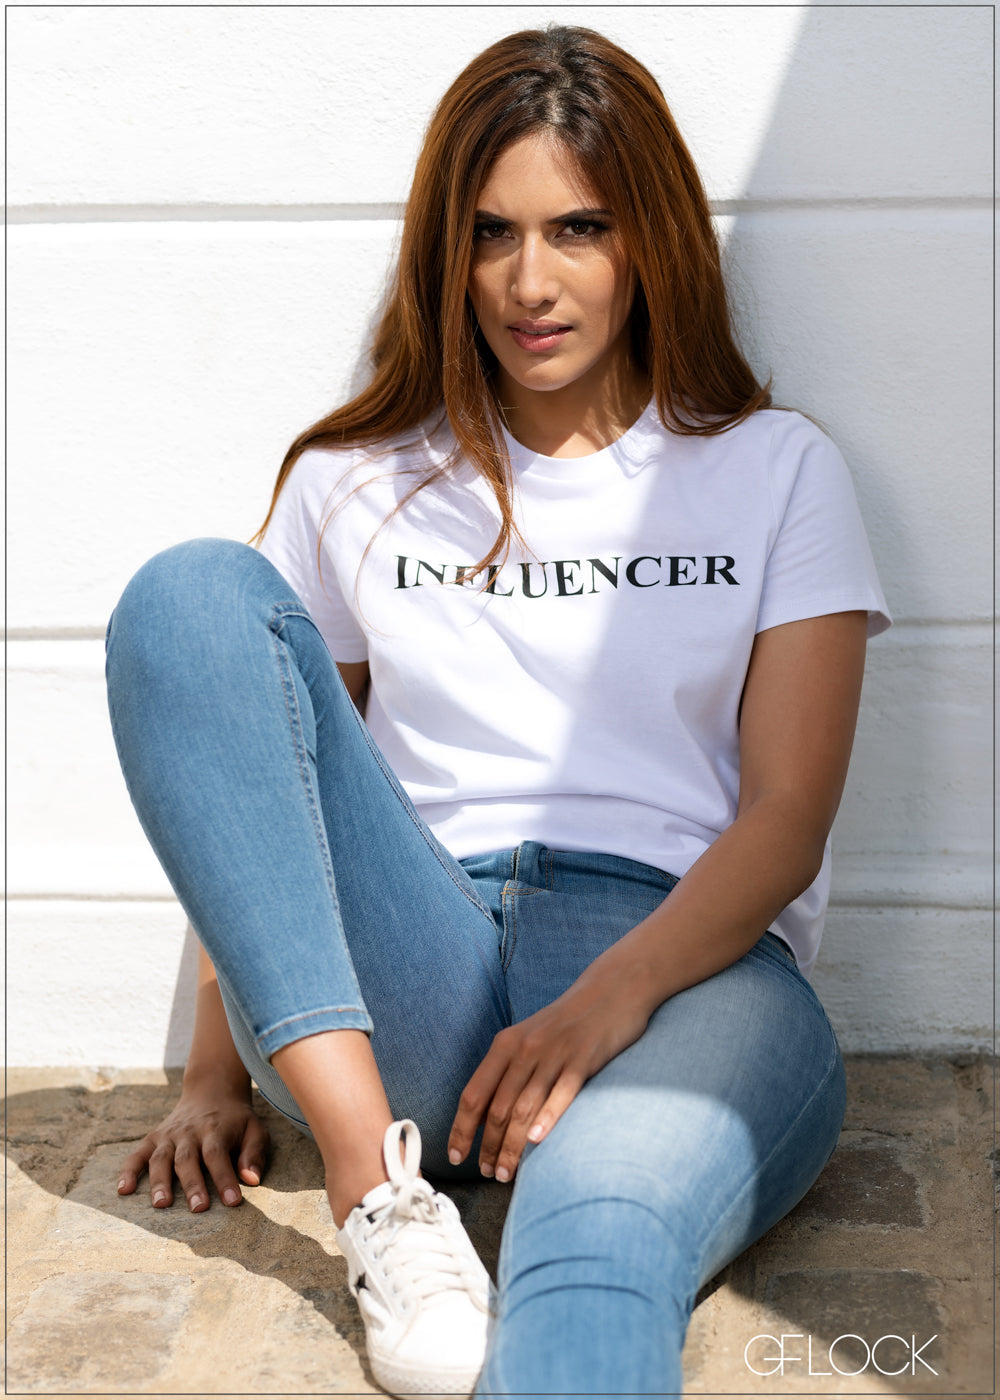 Influencer Tee - GFLOCK.LK